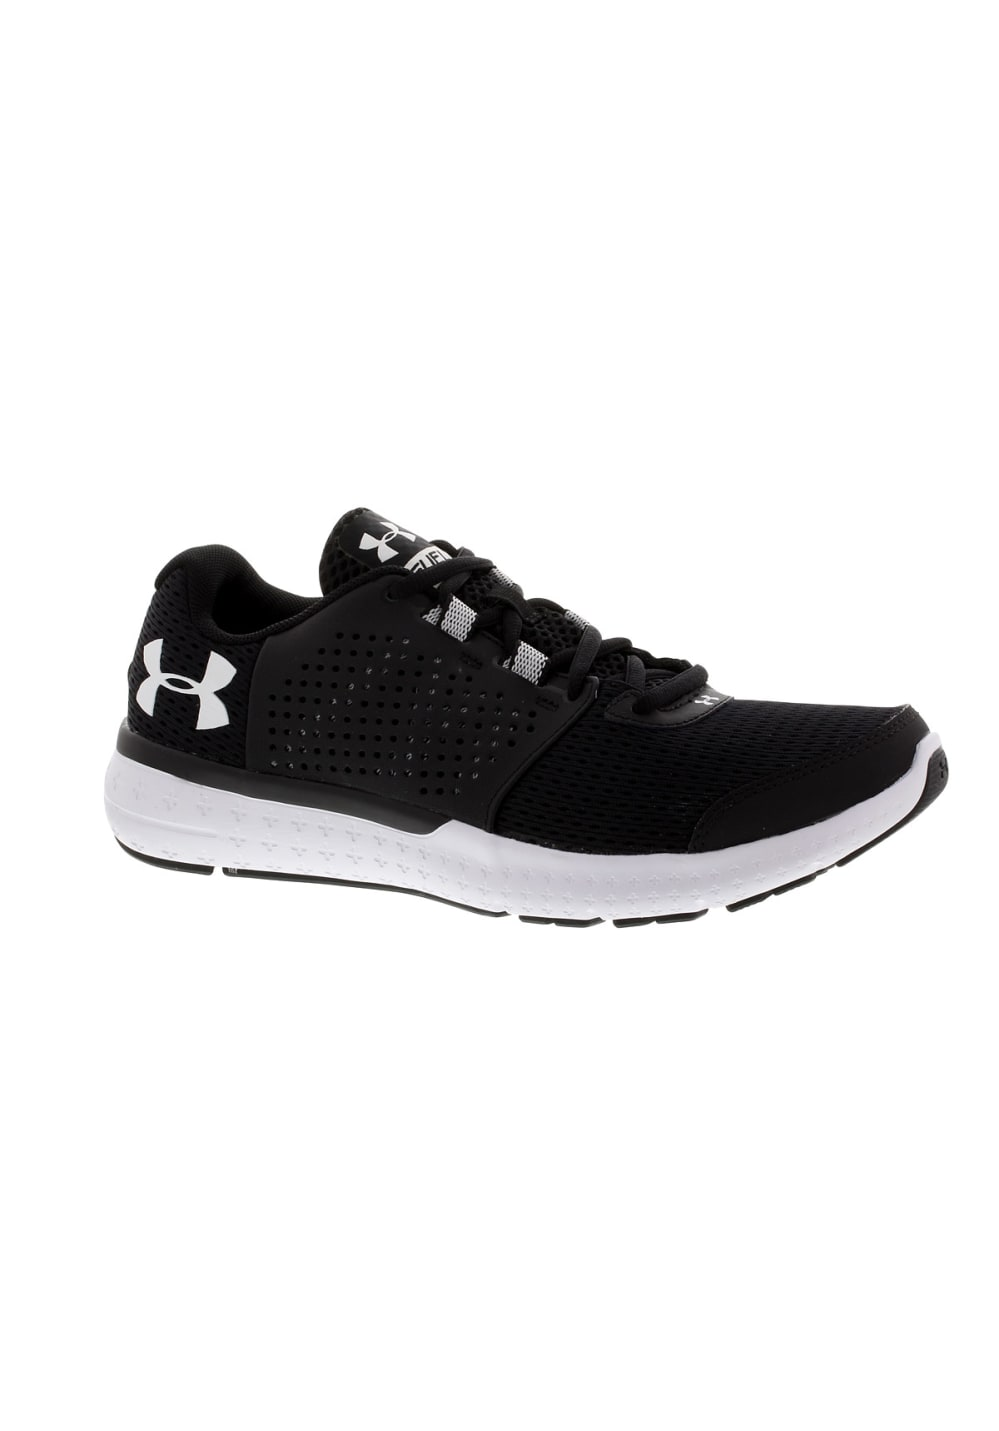 online retailer d25c7 69f03 Under Armour Micro G Fuel Rn - Running shoes for Men - Black